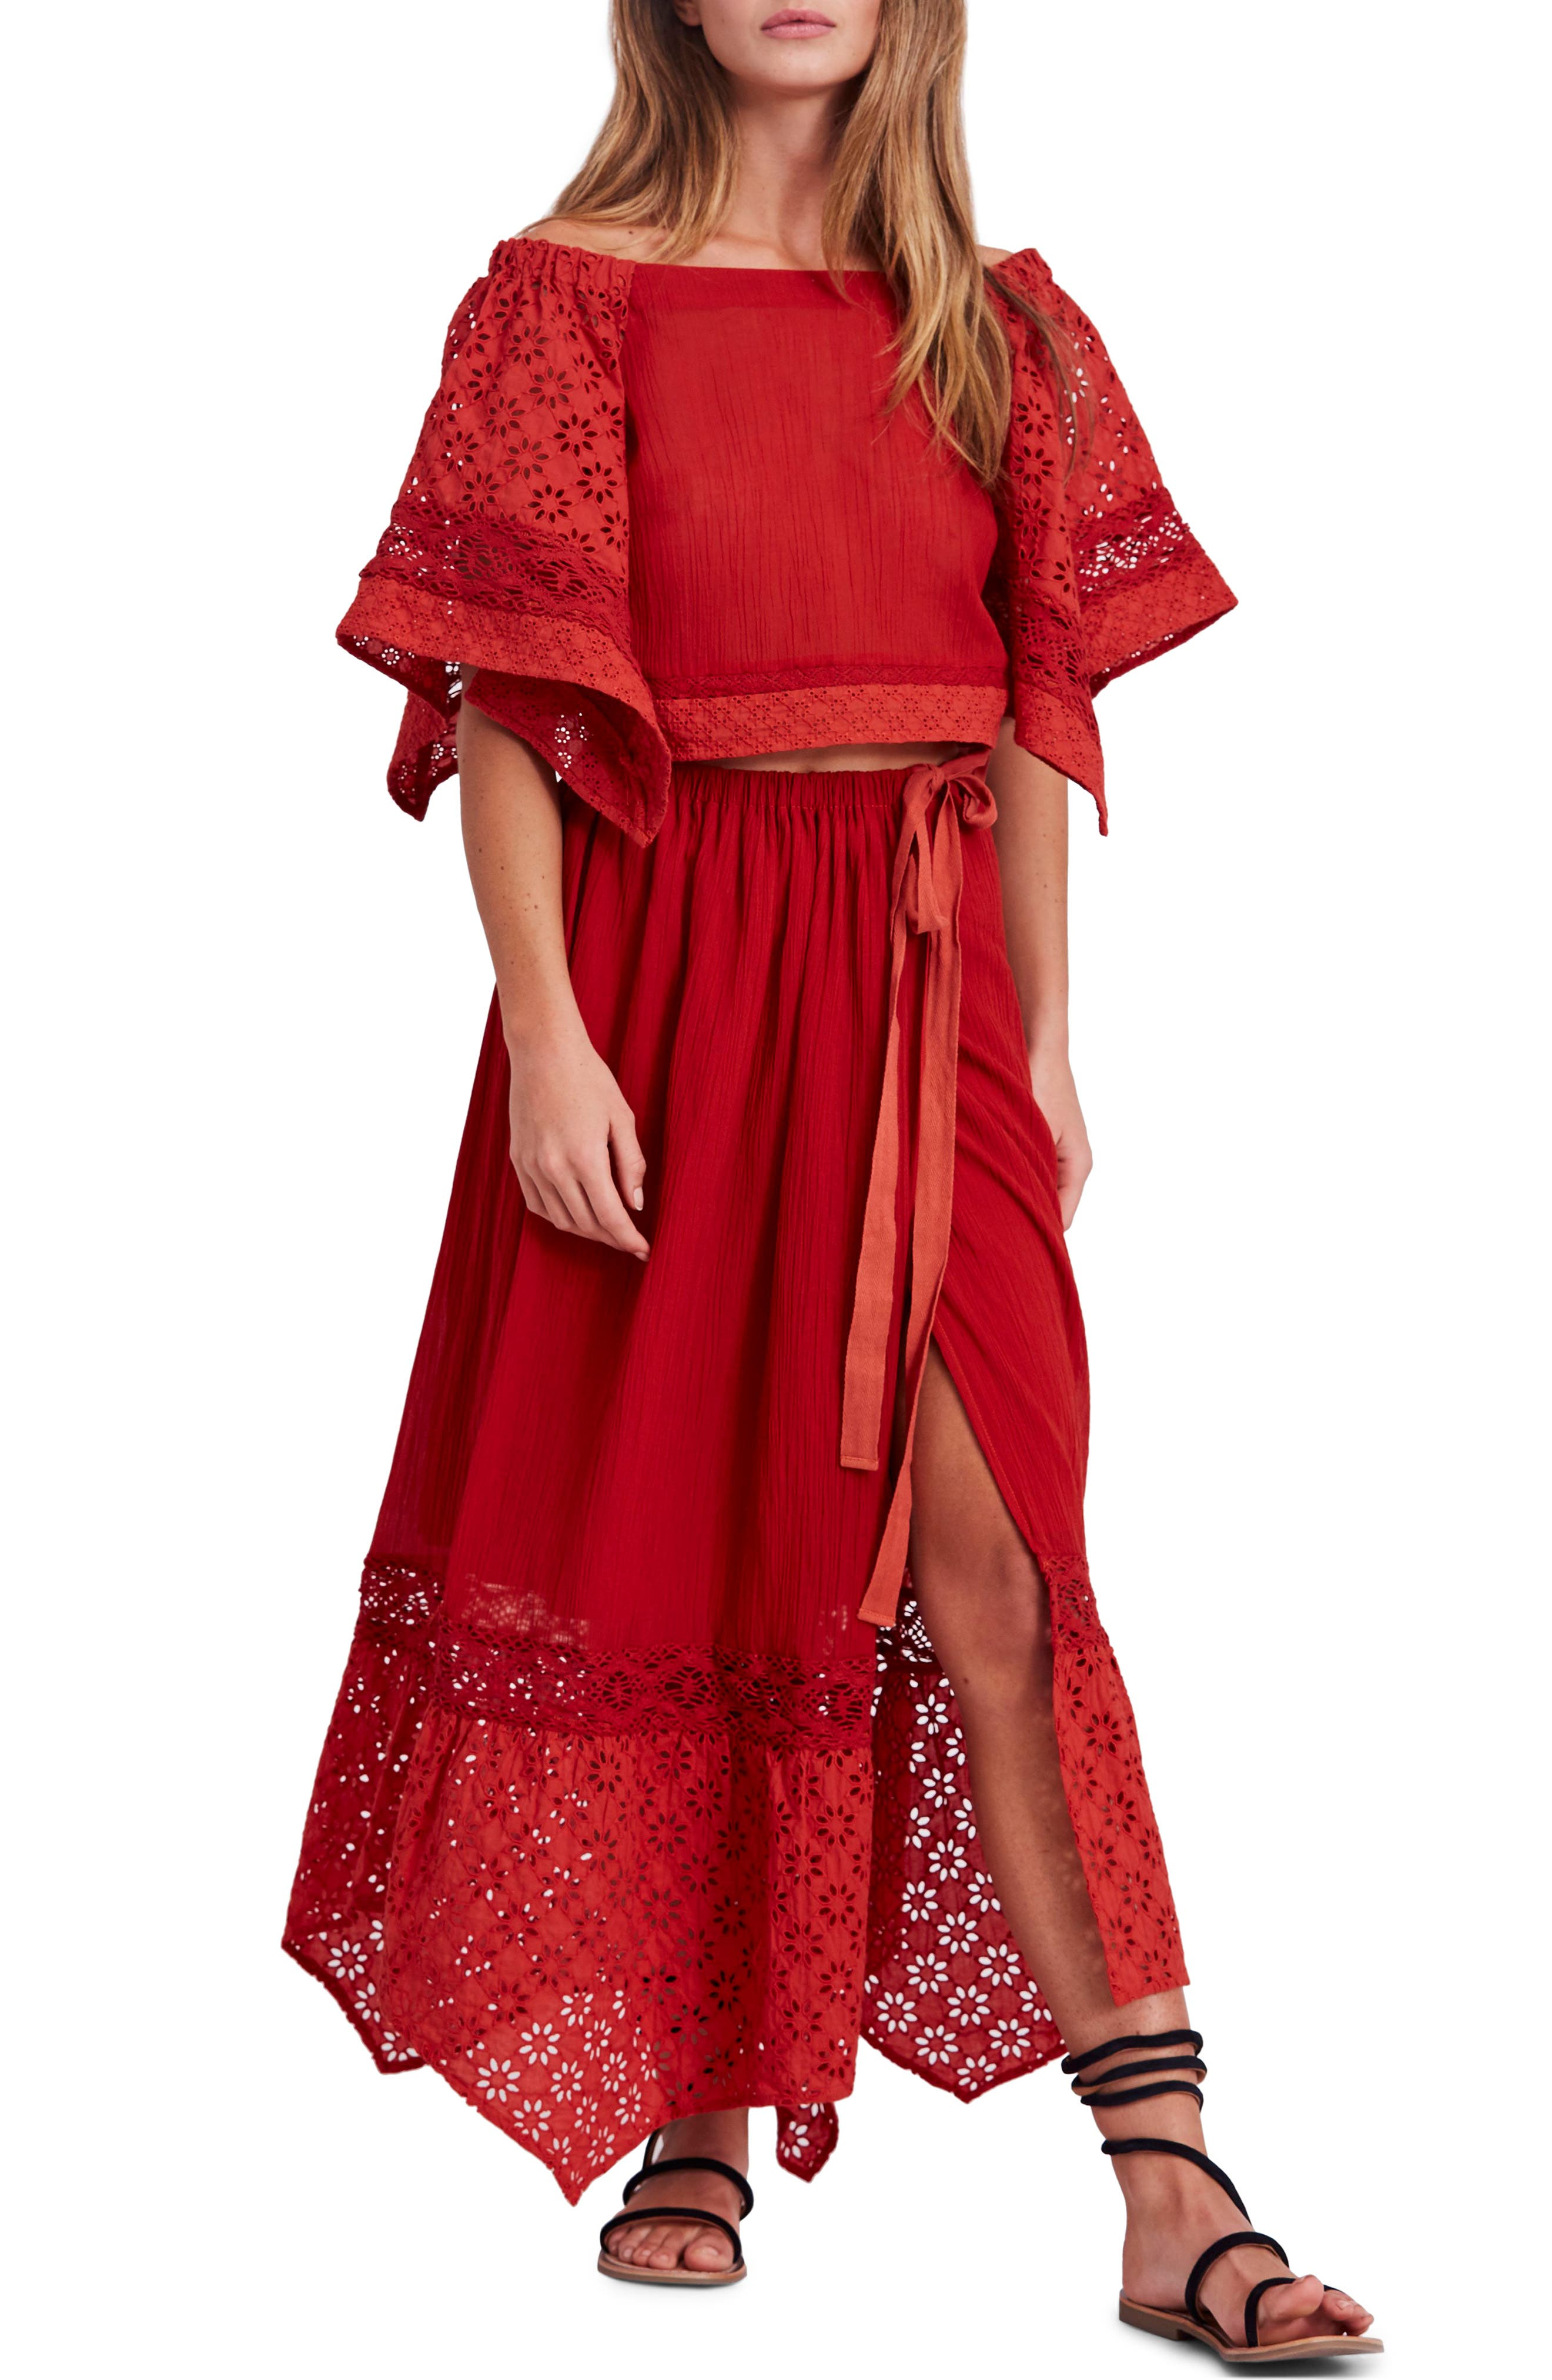 Free People Darling Top & Skirt,                             Main thumbnail 1, color,                             Red